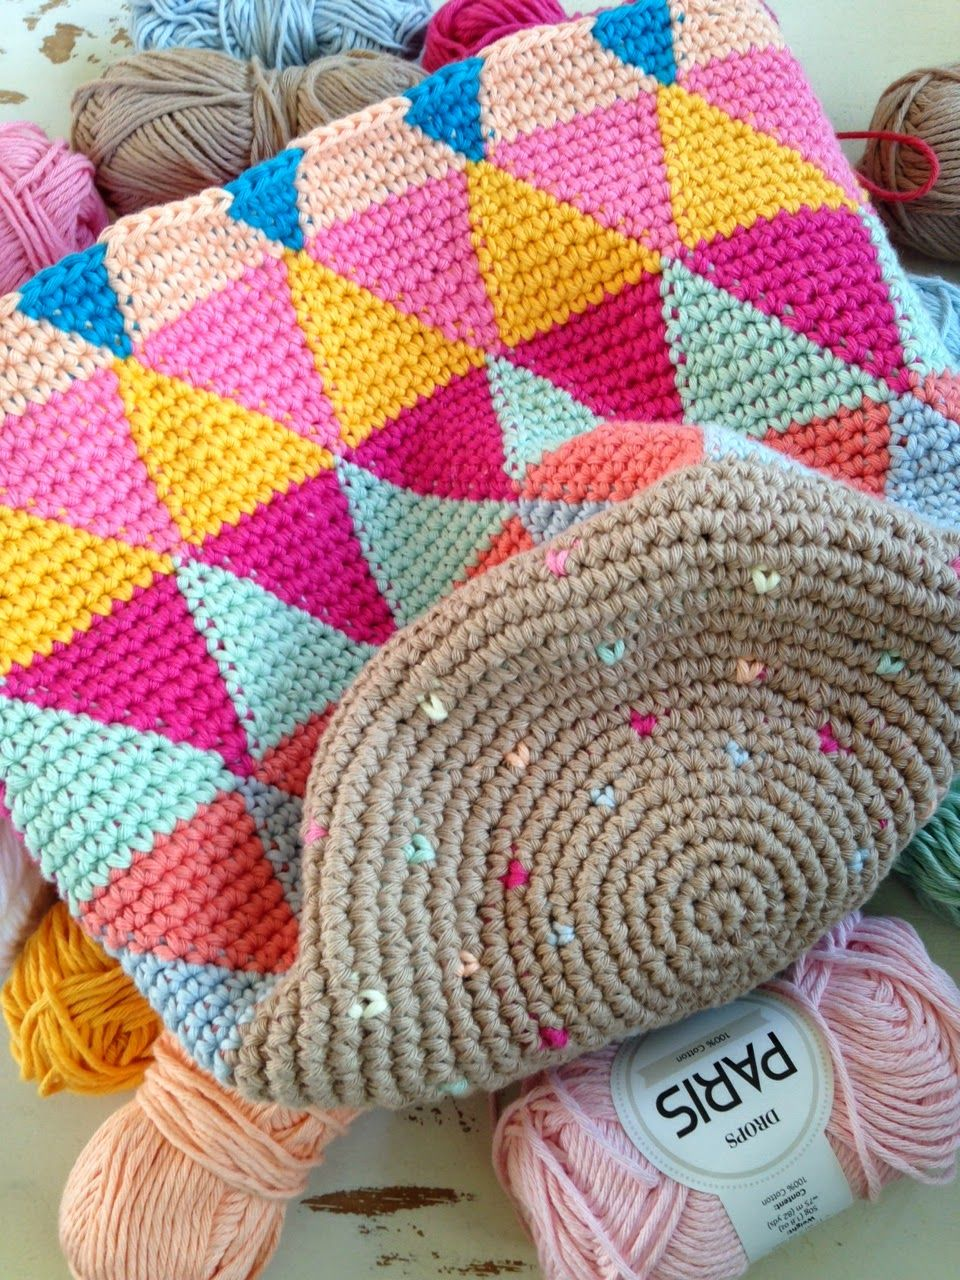 Crochet Wire Bags : Bag Lady Pinspiration! Tapestry bag. ?CQ #crochet #bags #totes http ...